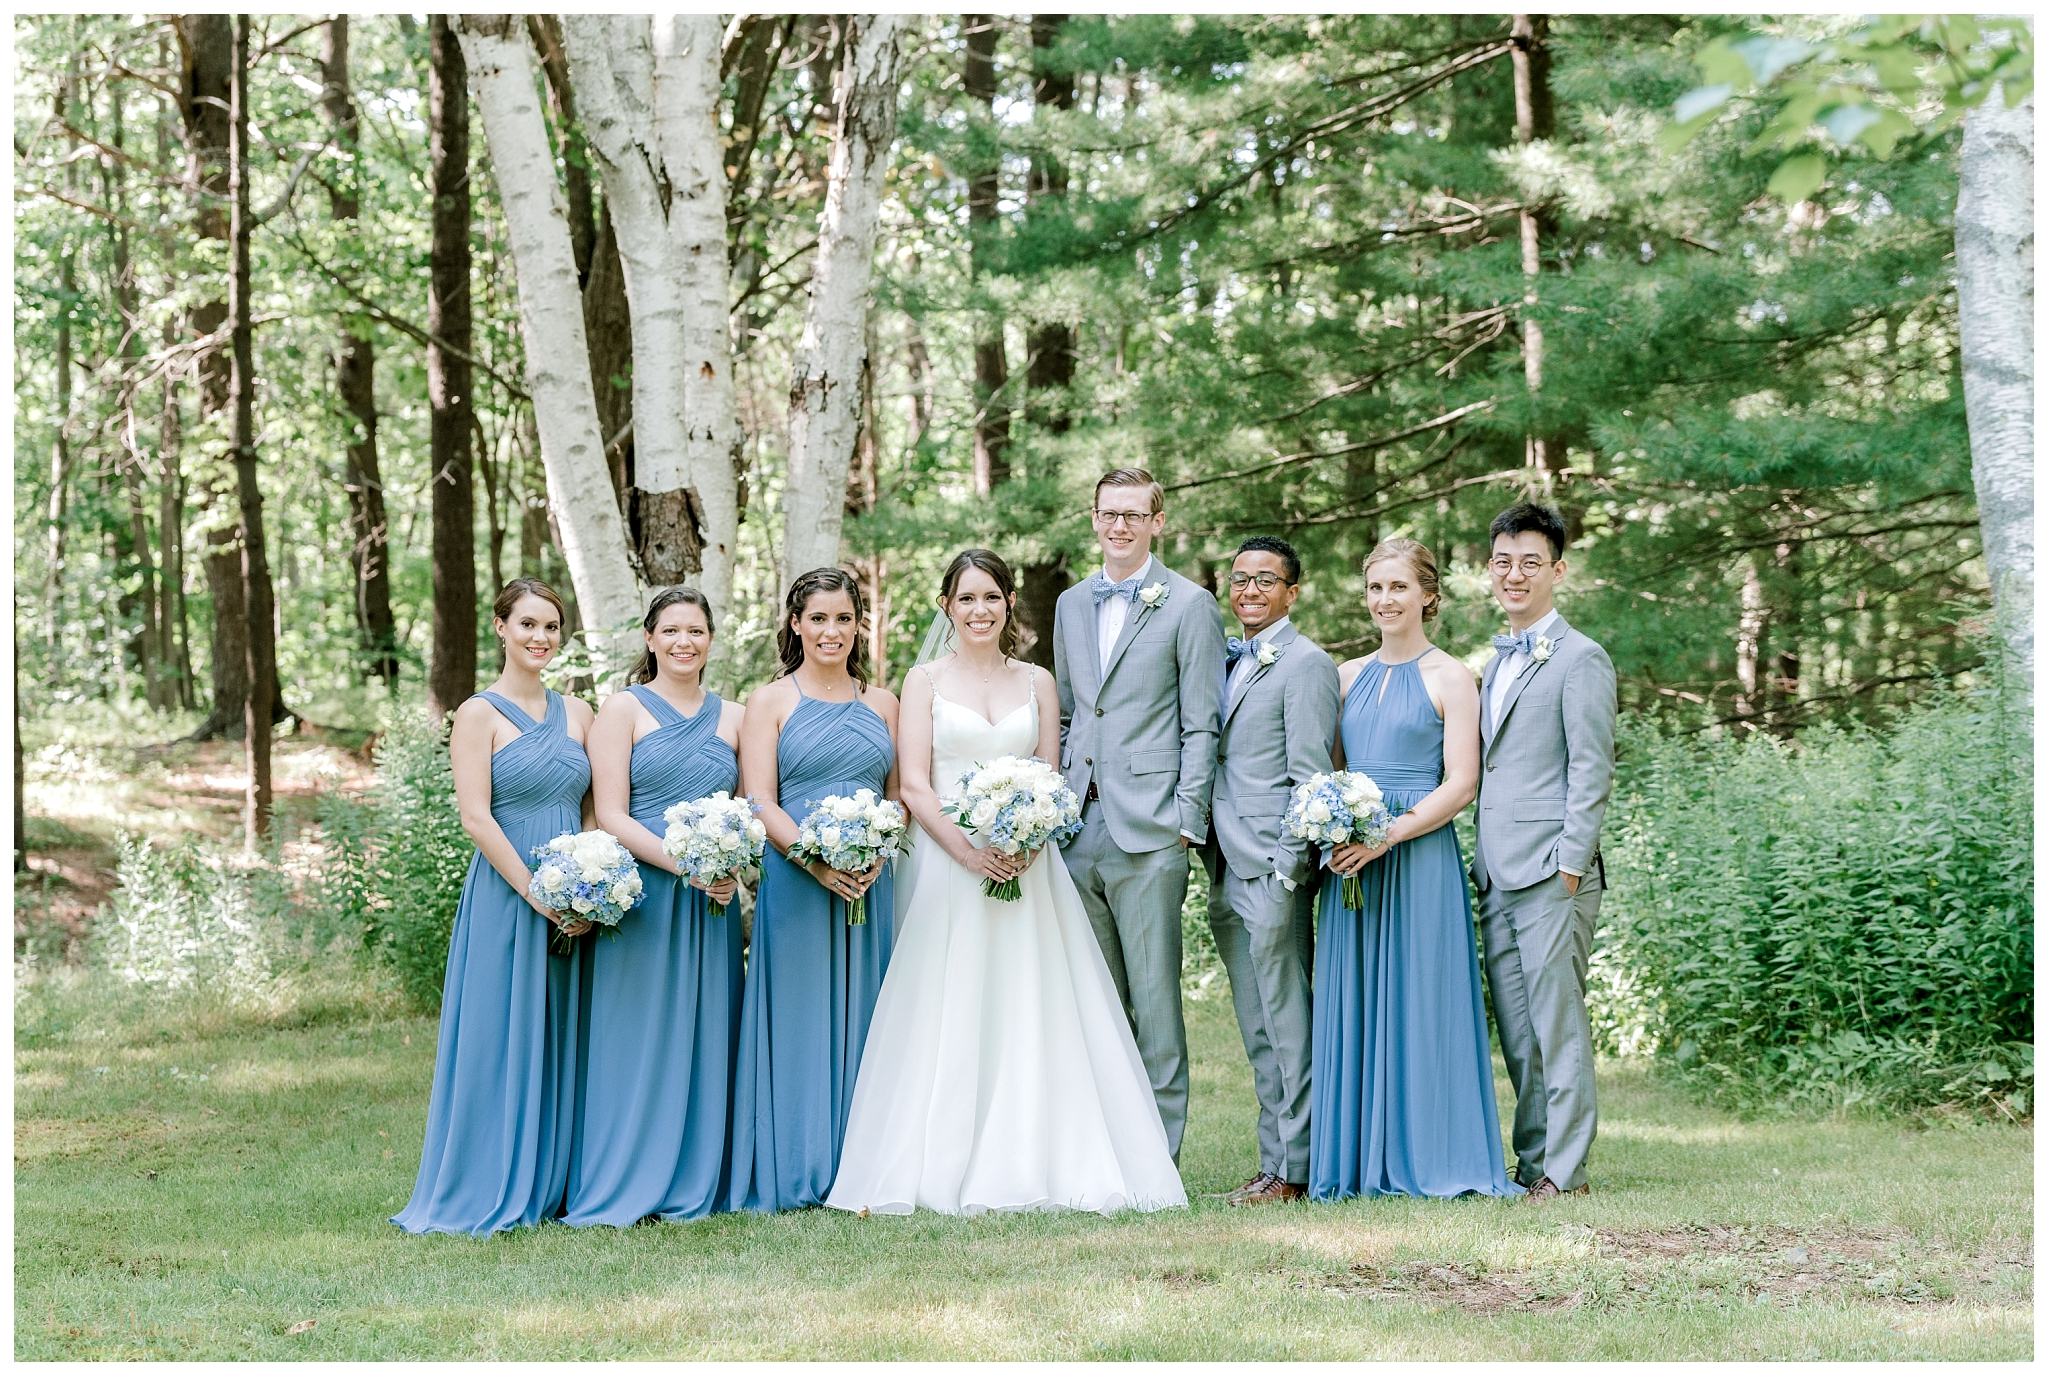 York Maine Wedding Party Portrait Photography